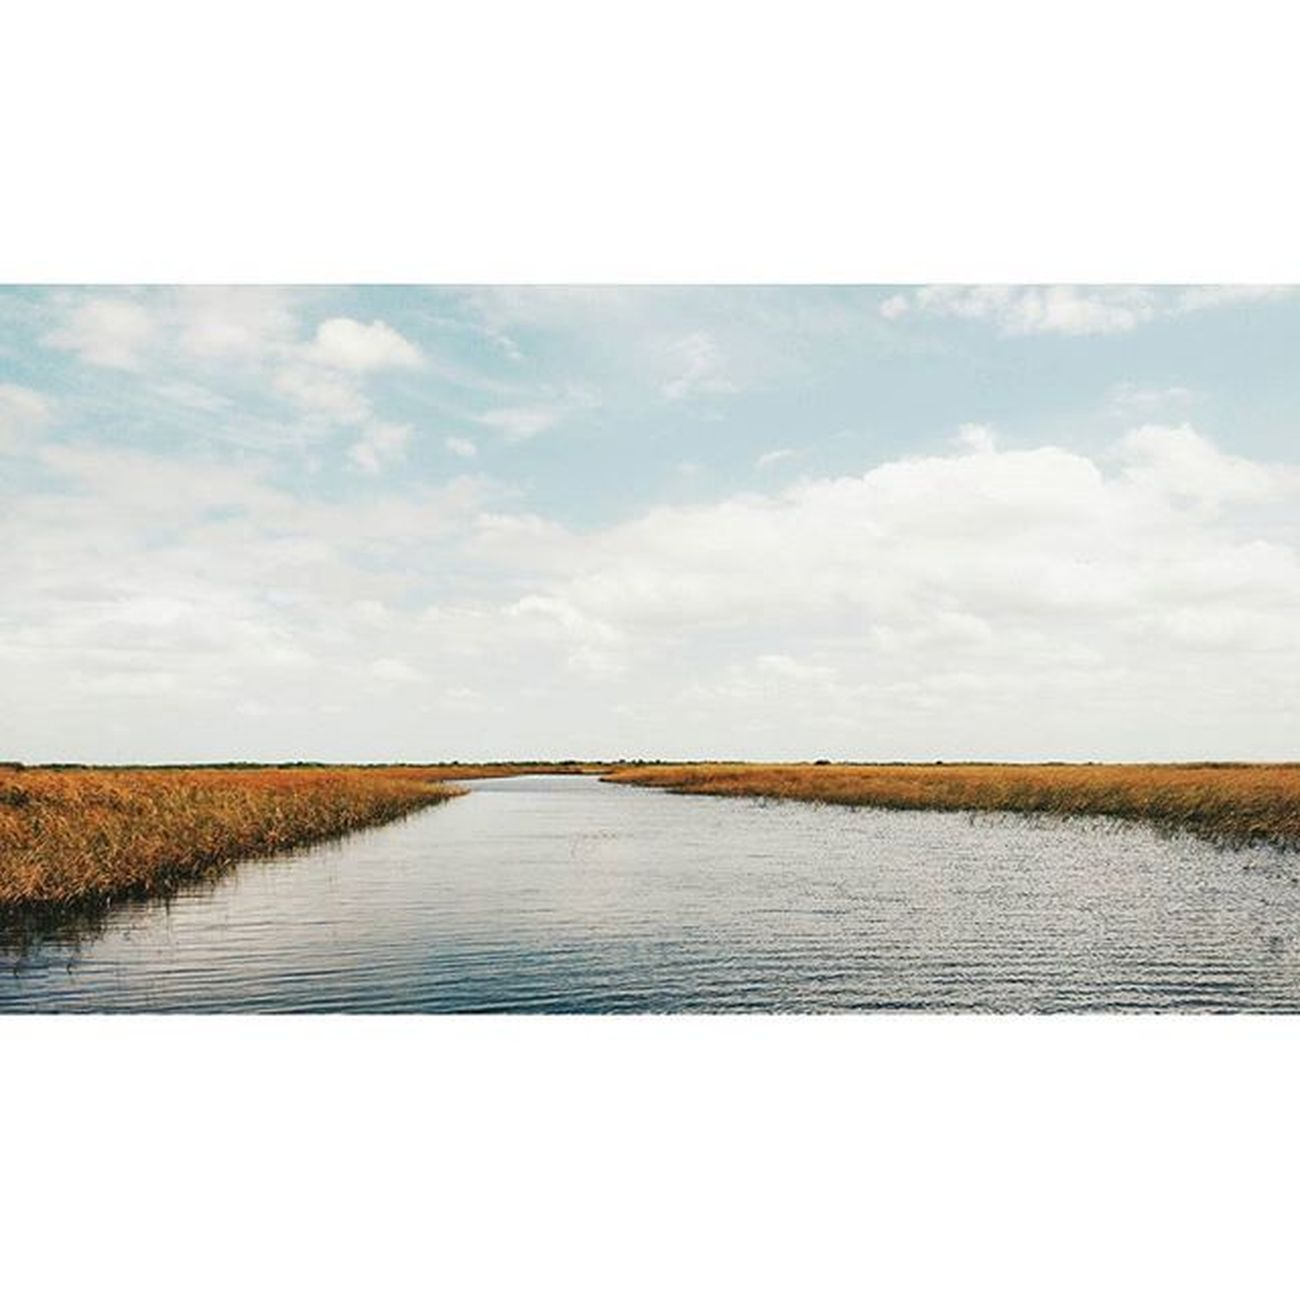 Landscape 🐊 . . . Everglades  Noaligatorsinmyway Sunday Fam Miami River Natgeo Airboat Trip